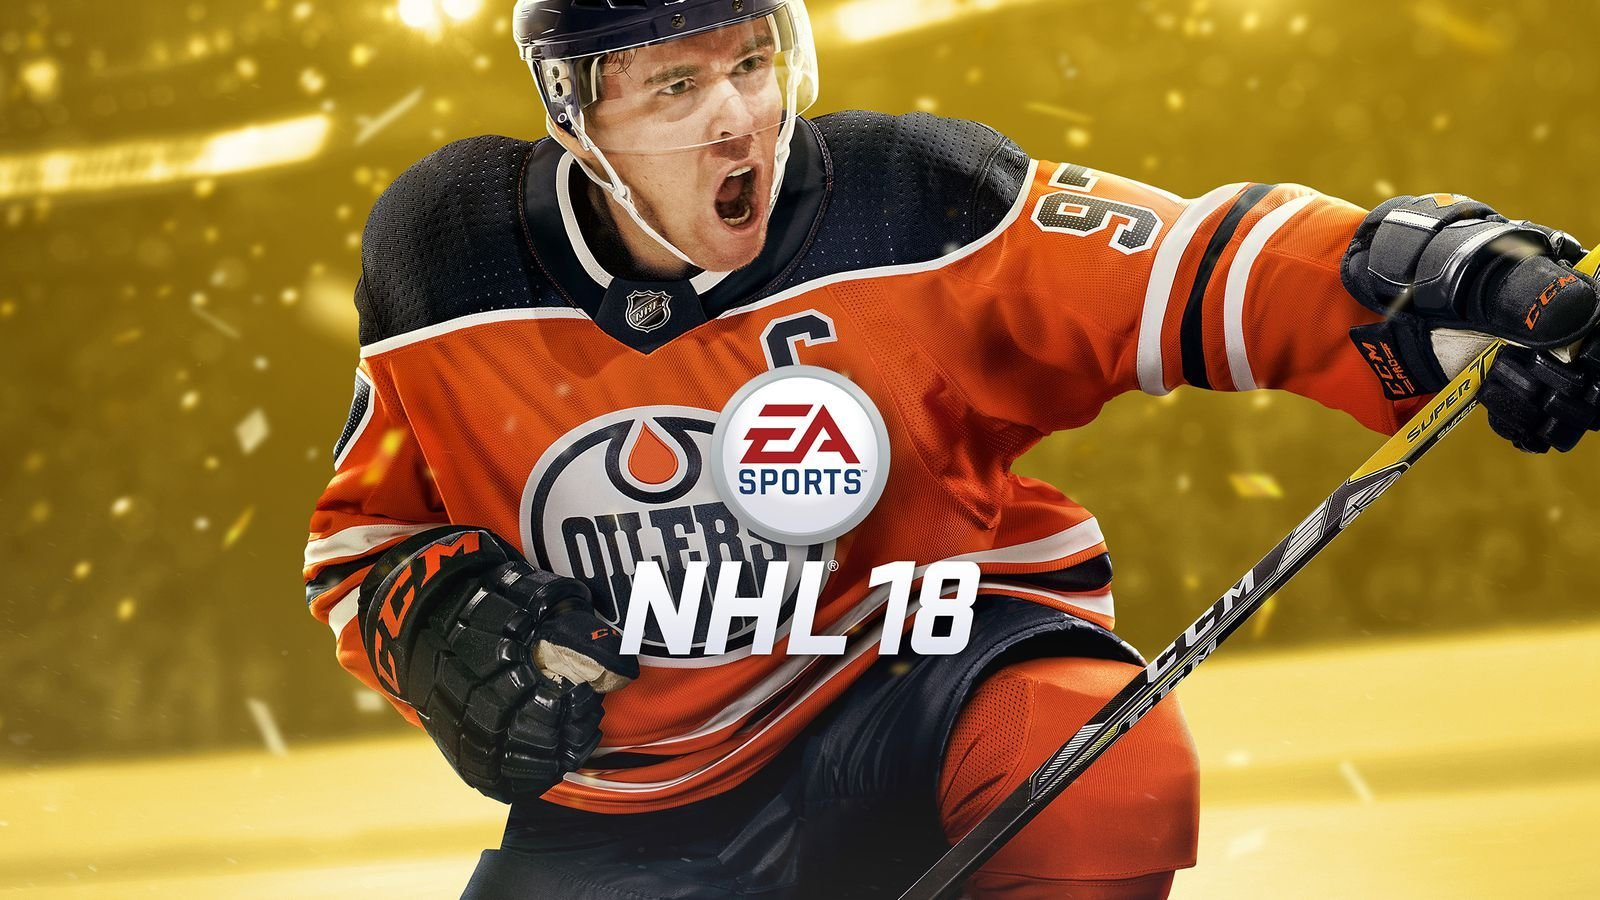 NHL 18 8900 Ultimate Points 5